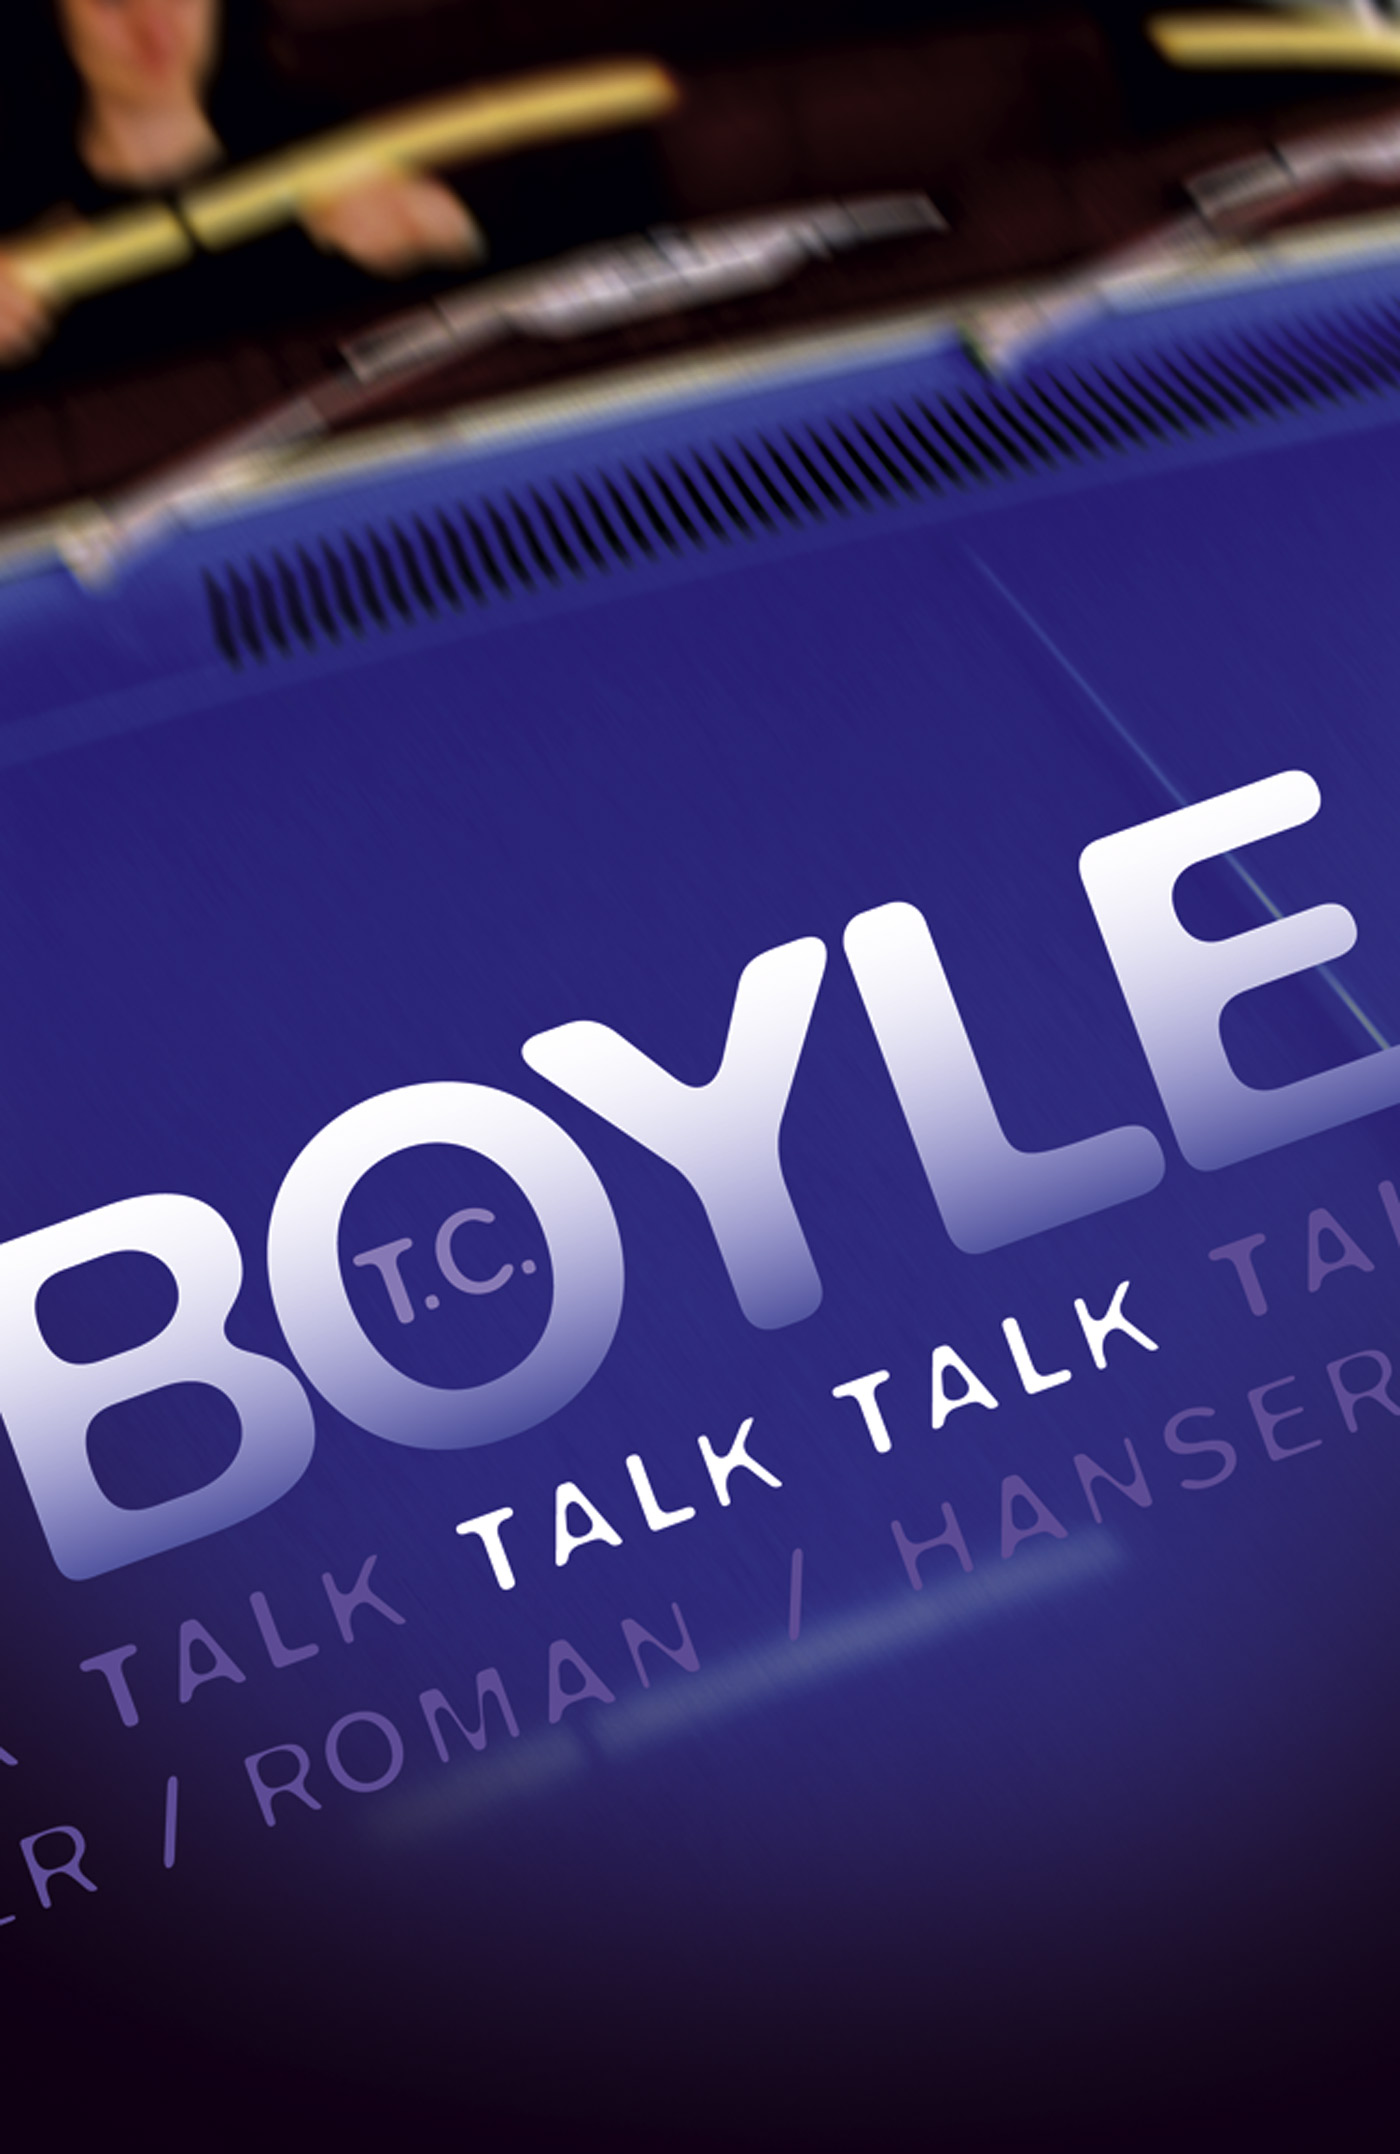 Talk Talk - Tom Coraghessan Boyle